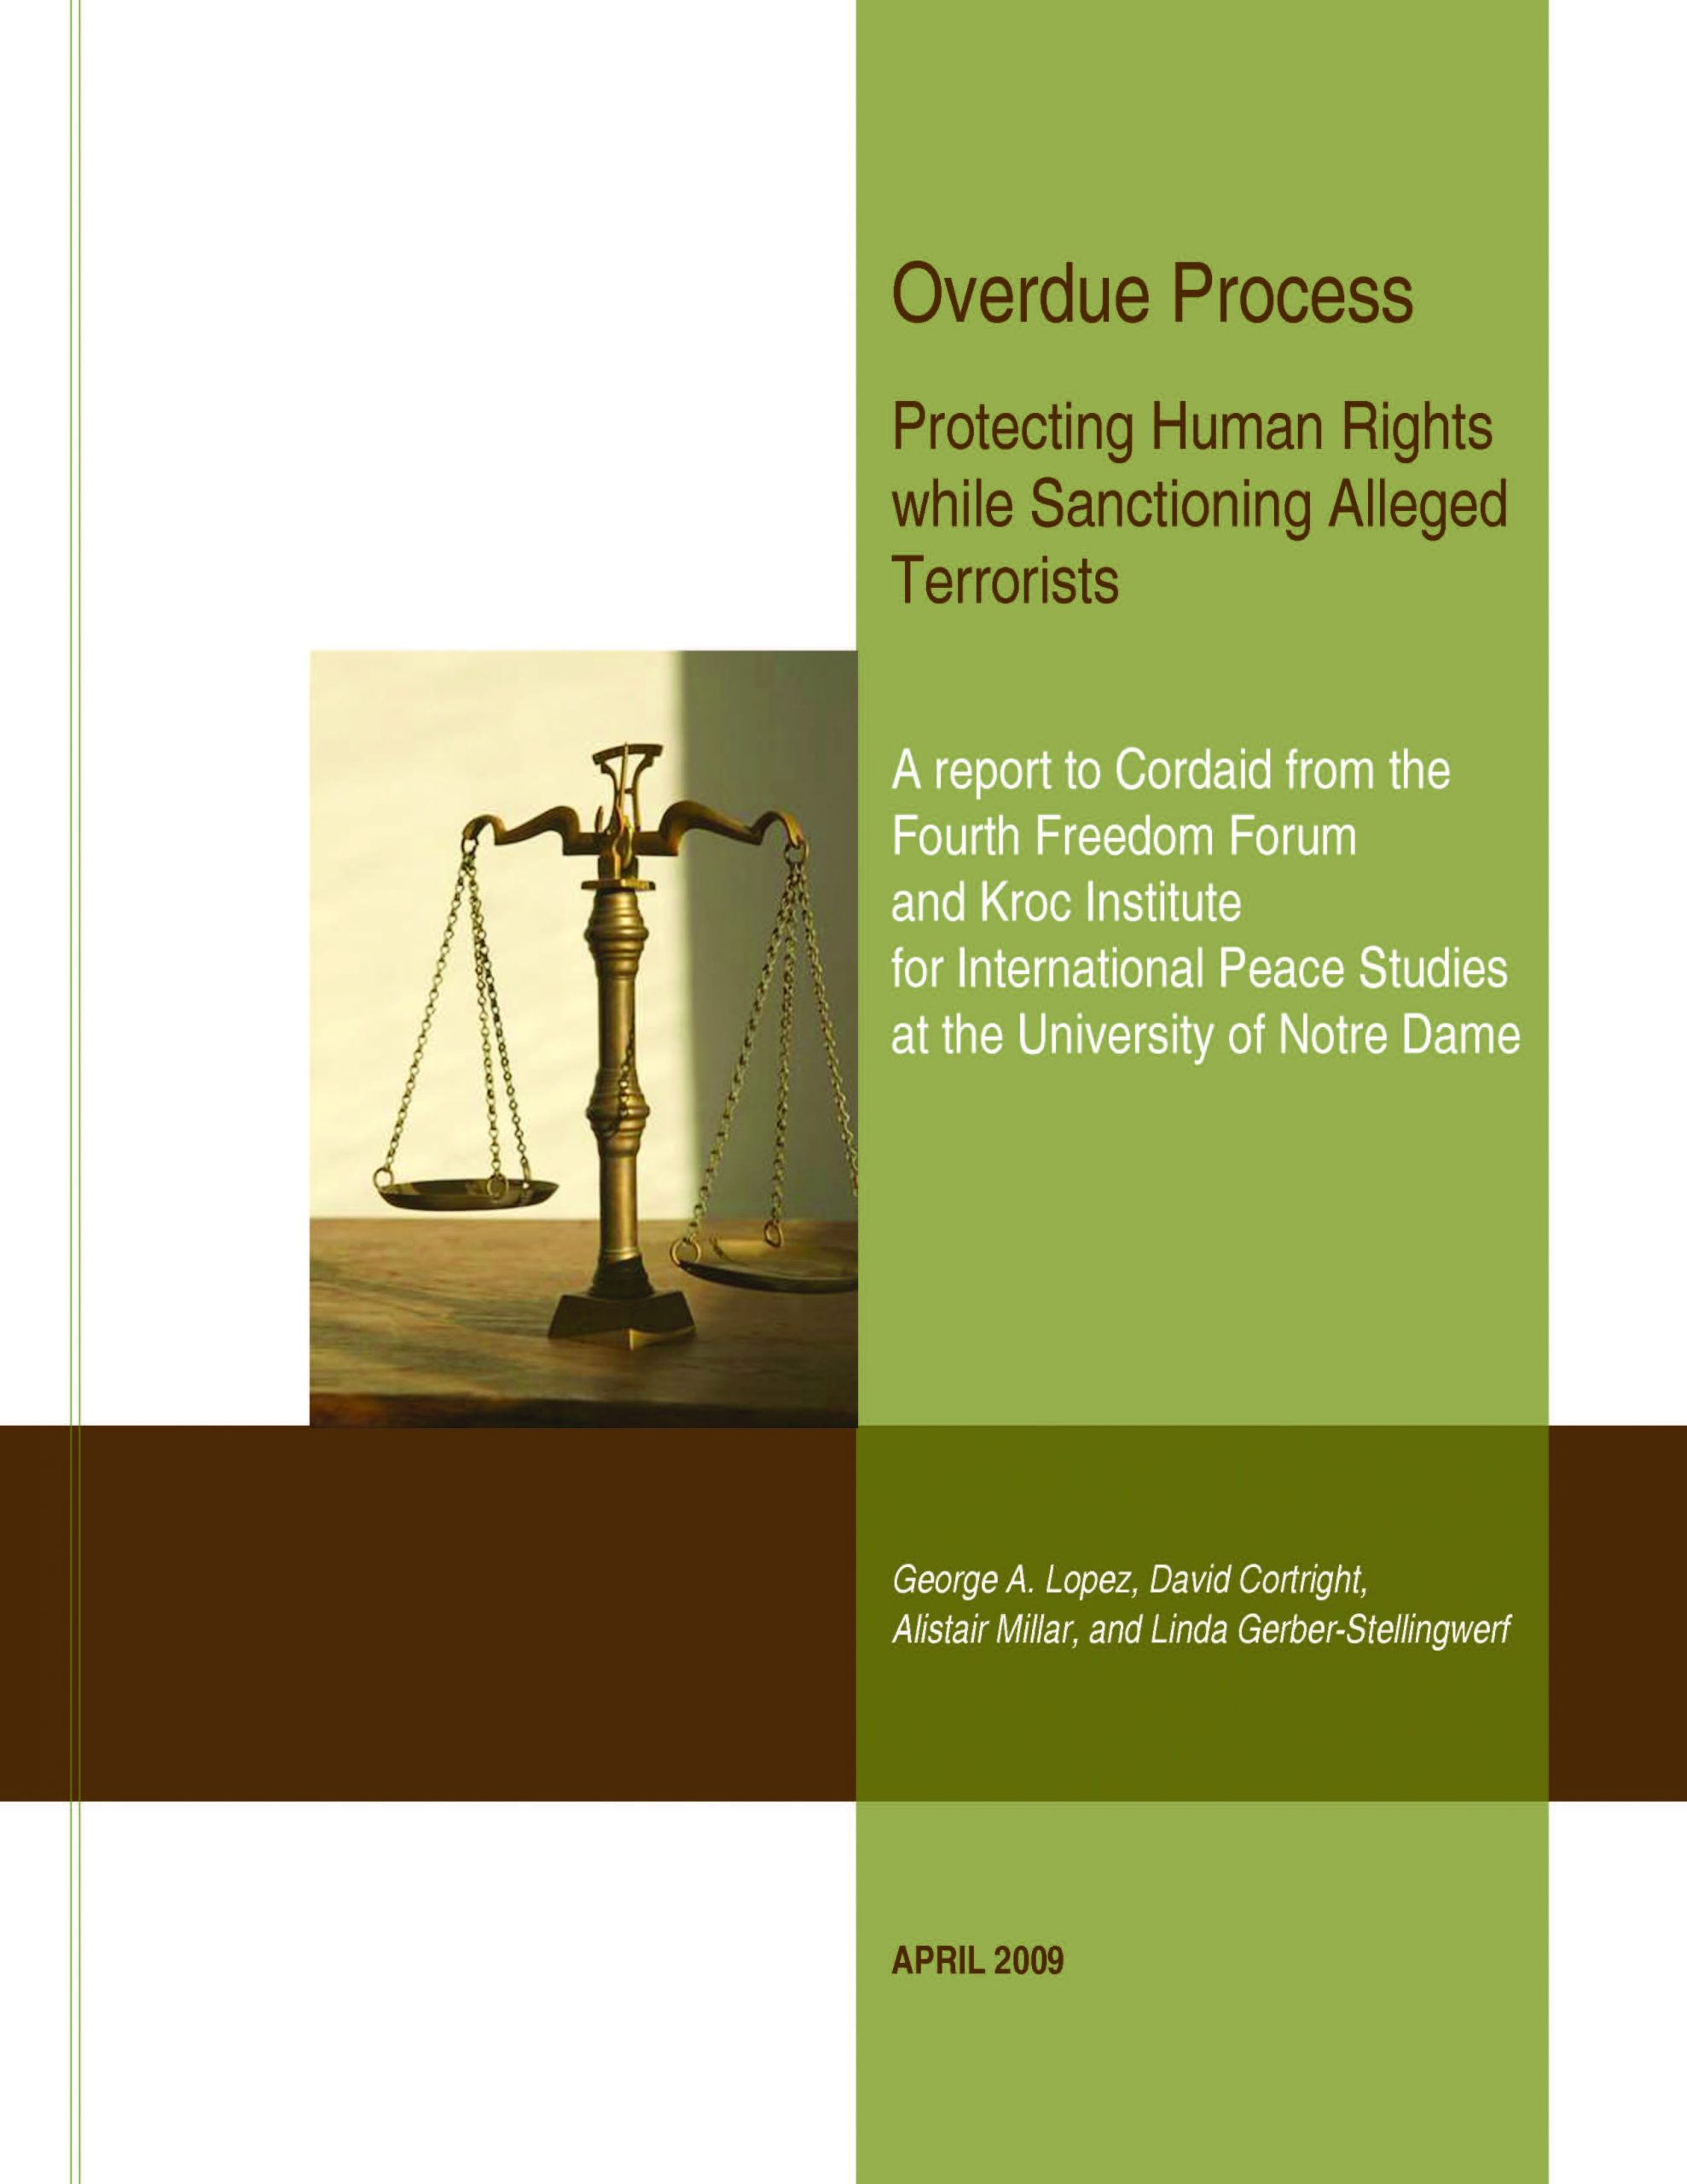 Overdue Process: Protecting Human Rights while Sanctioning Alleged Terrorists